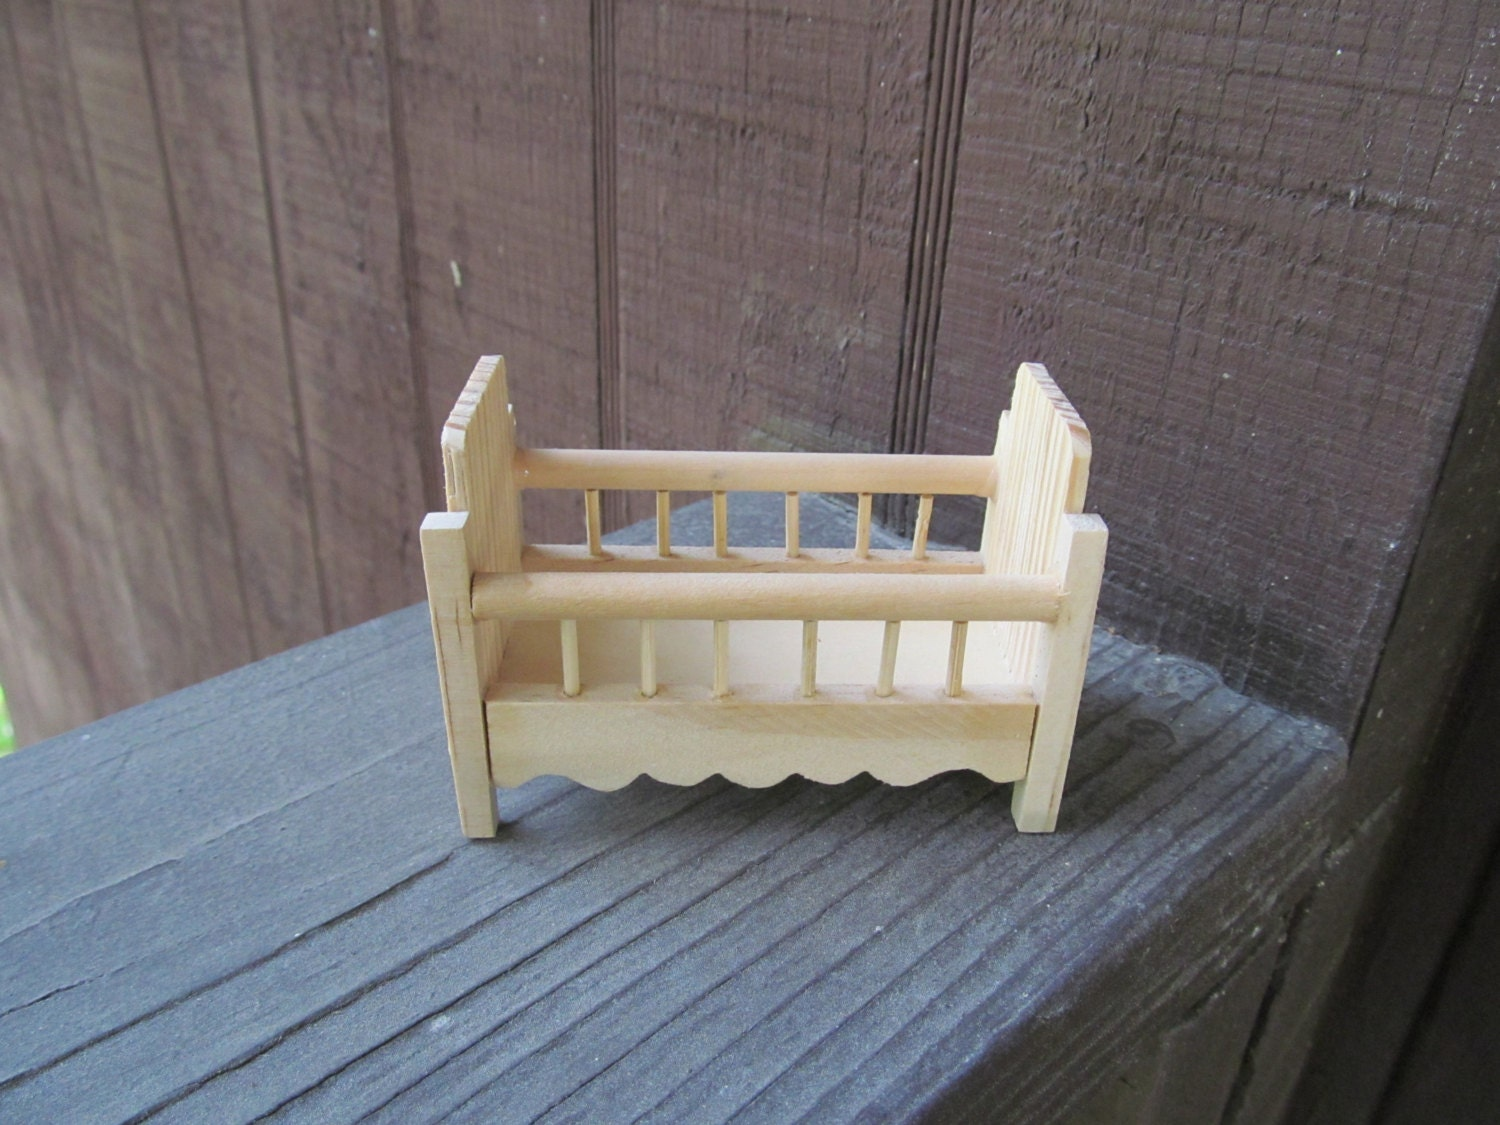 Baby cribs unfinished wood - Set Of 2 Vintage Mini Wood Cribs For Baby Shower Favors Or Doll House Set Of 2